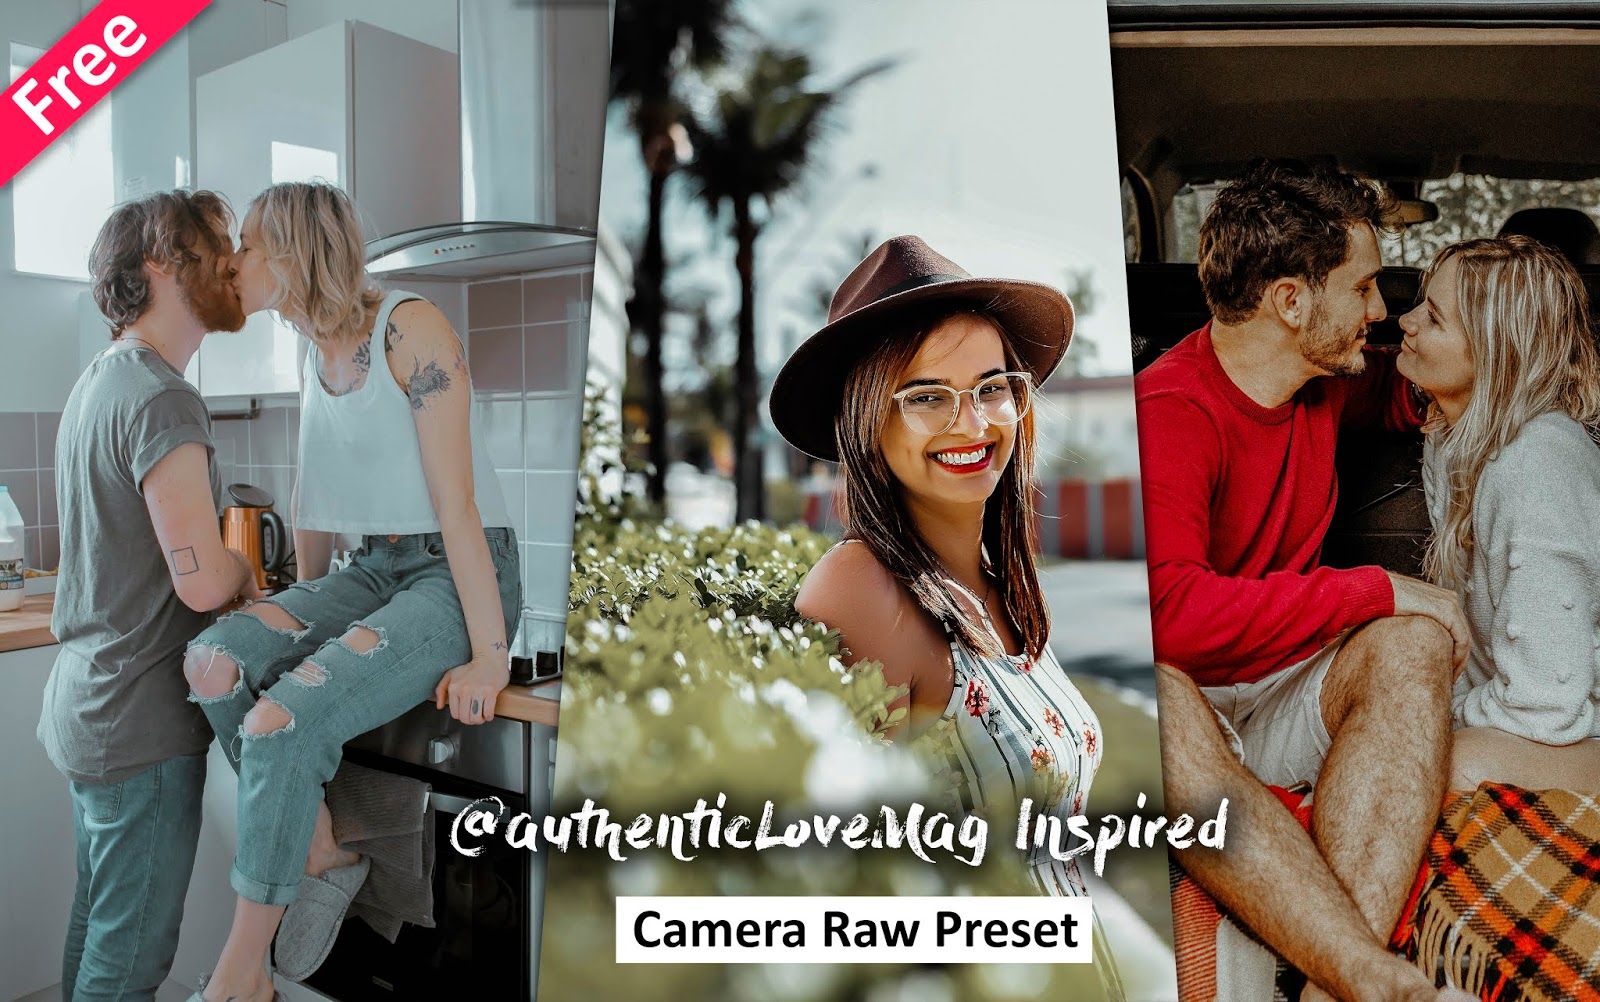 Download AuthenticLoveMag Inspired Camera Raw Presets for Free | How to Edit Photos Like AuthenticLoveMag in Photoshop